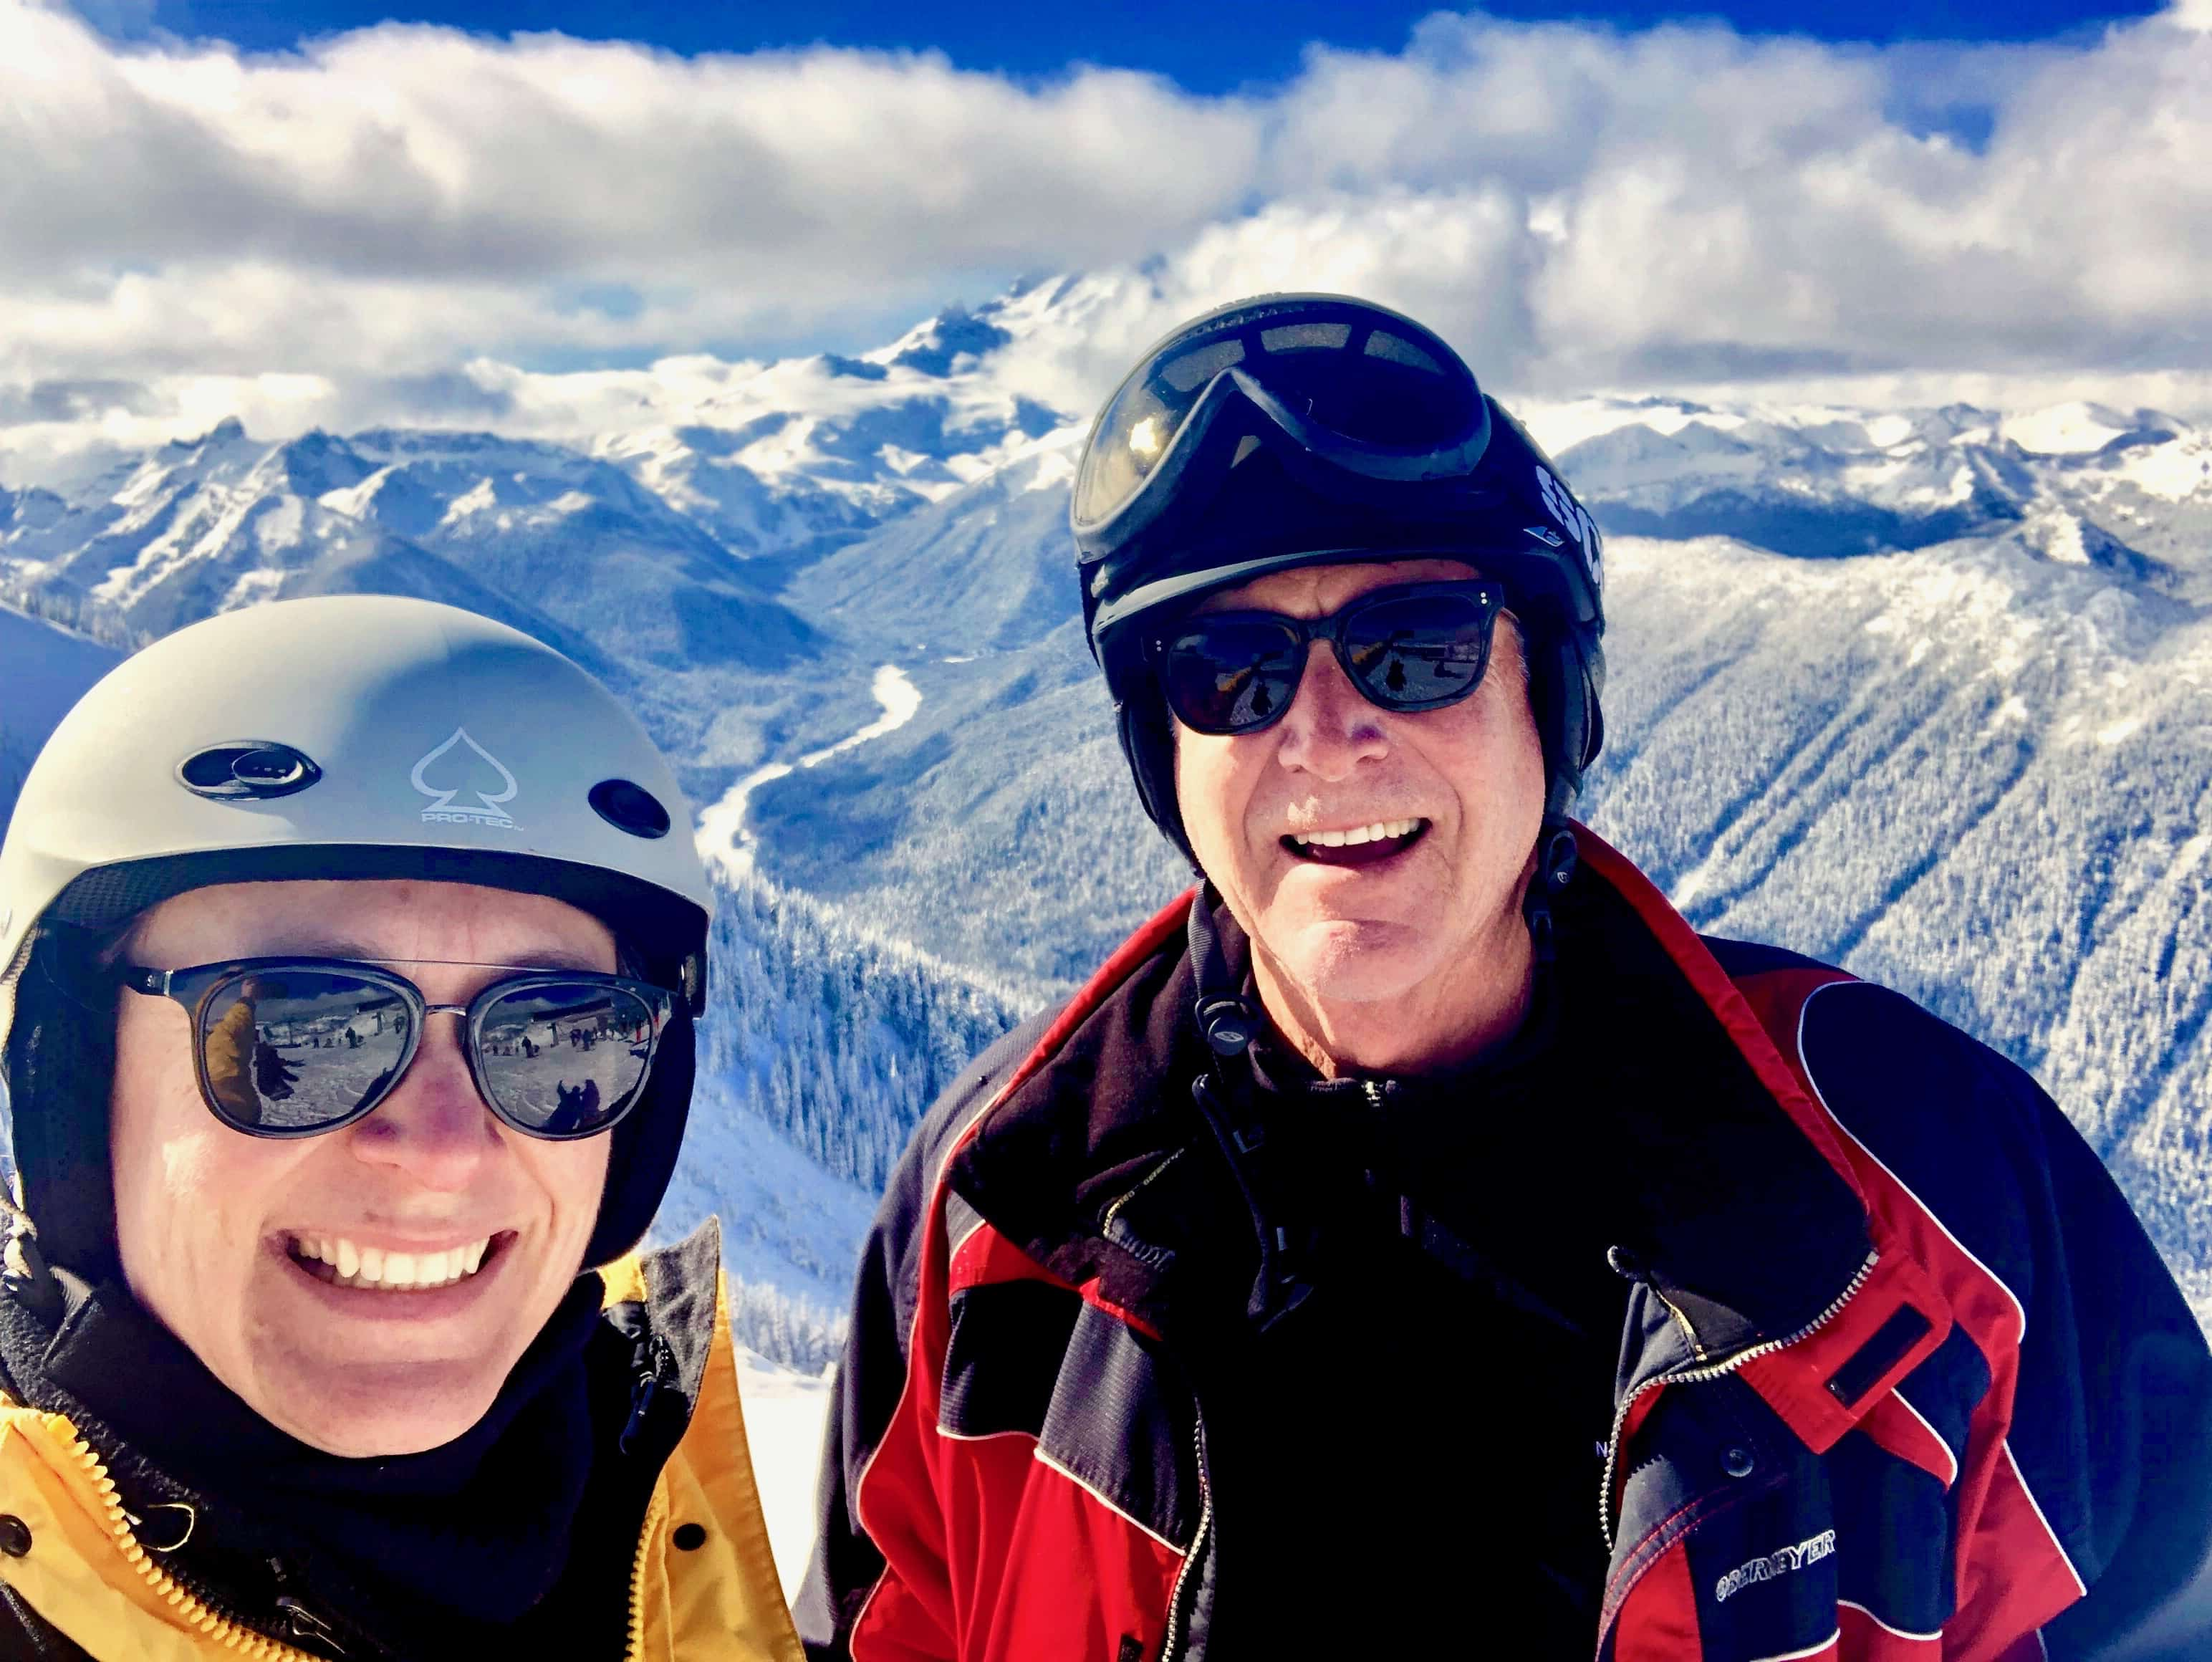 Tim and daughter, Tara. Bateman at the Top of Crystal Mountain.